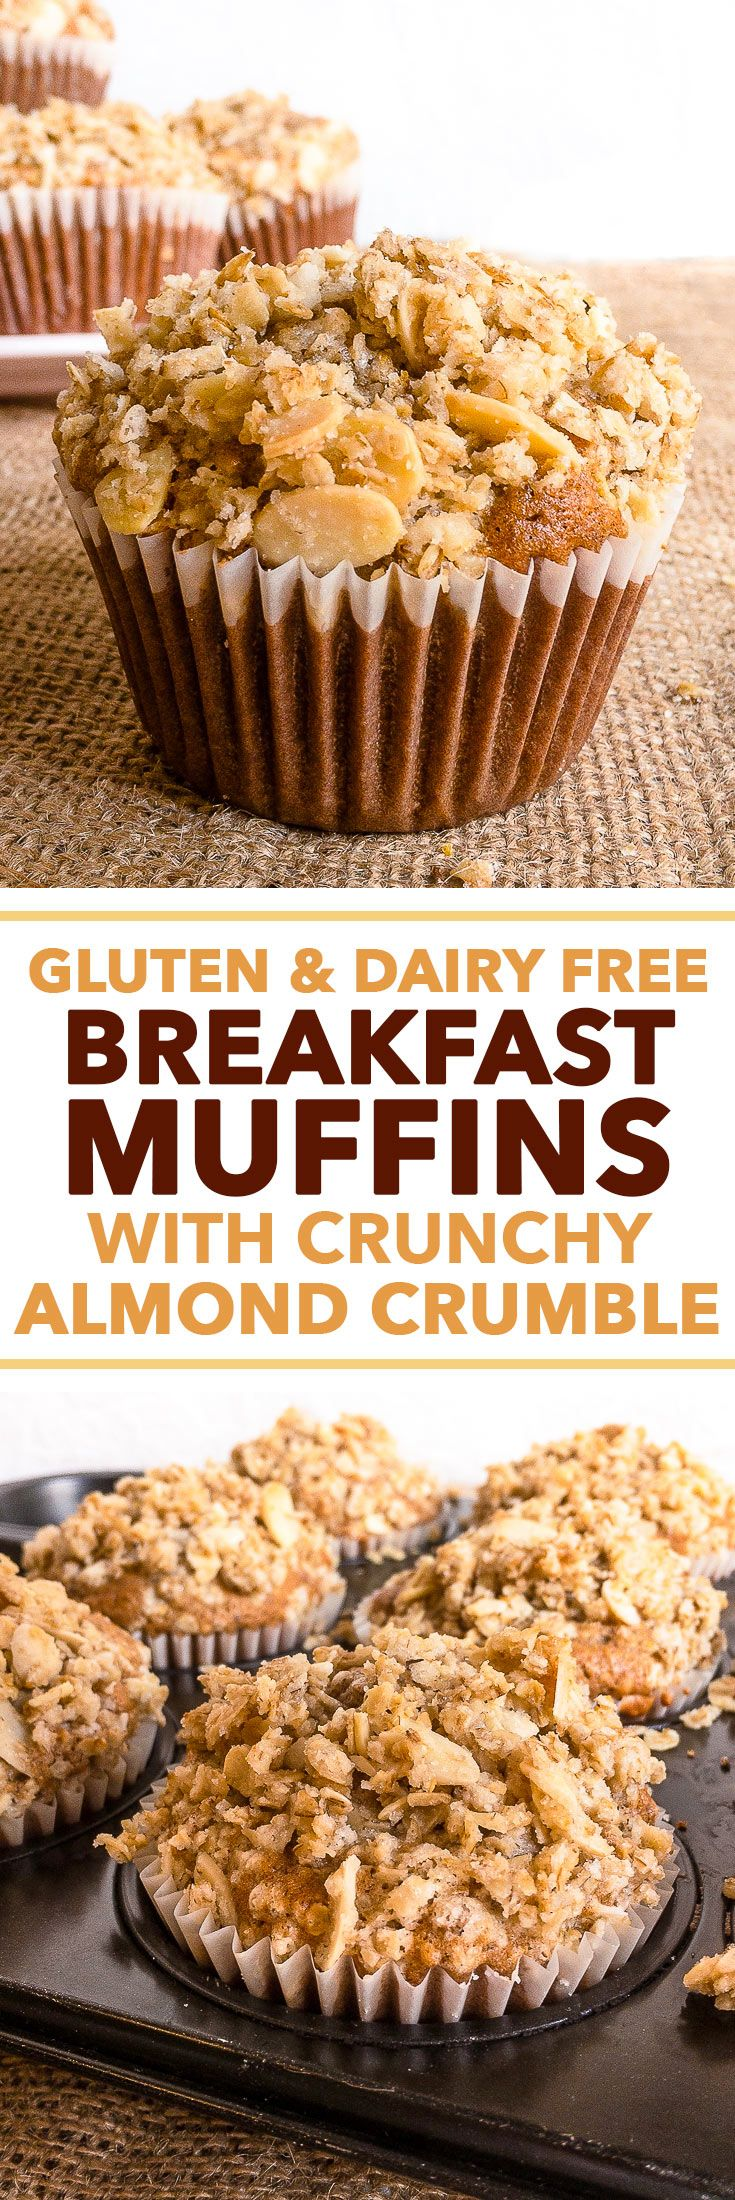 Gluten & Dairy Free Breakfast Muffins with Crunchy Almond Crumble {gluten, dairy, peanut & soy free} - These gluten & dairy free breakfast muffins have absolutely everything going for them – they are  (Ibs Diet Recipes)